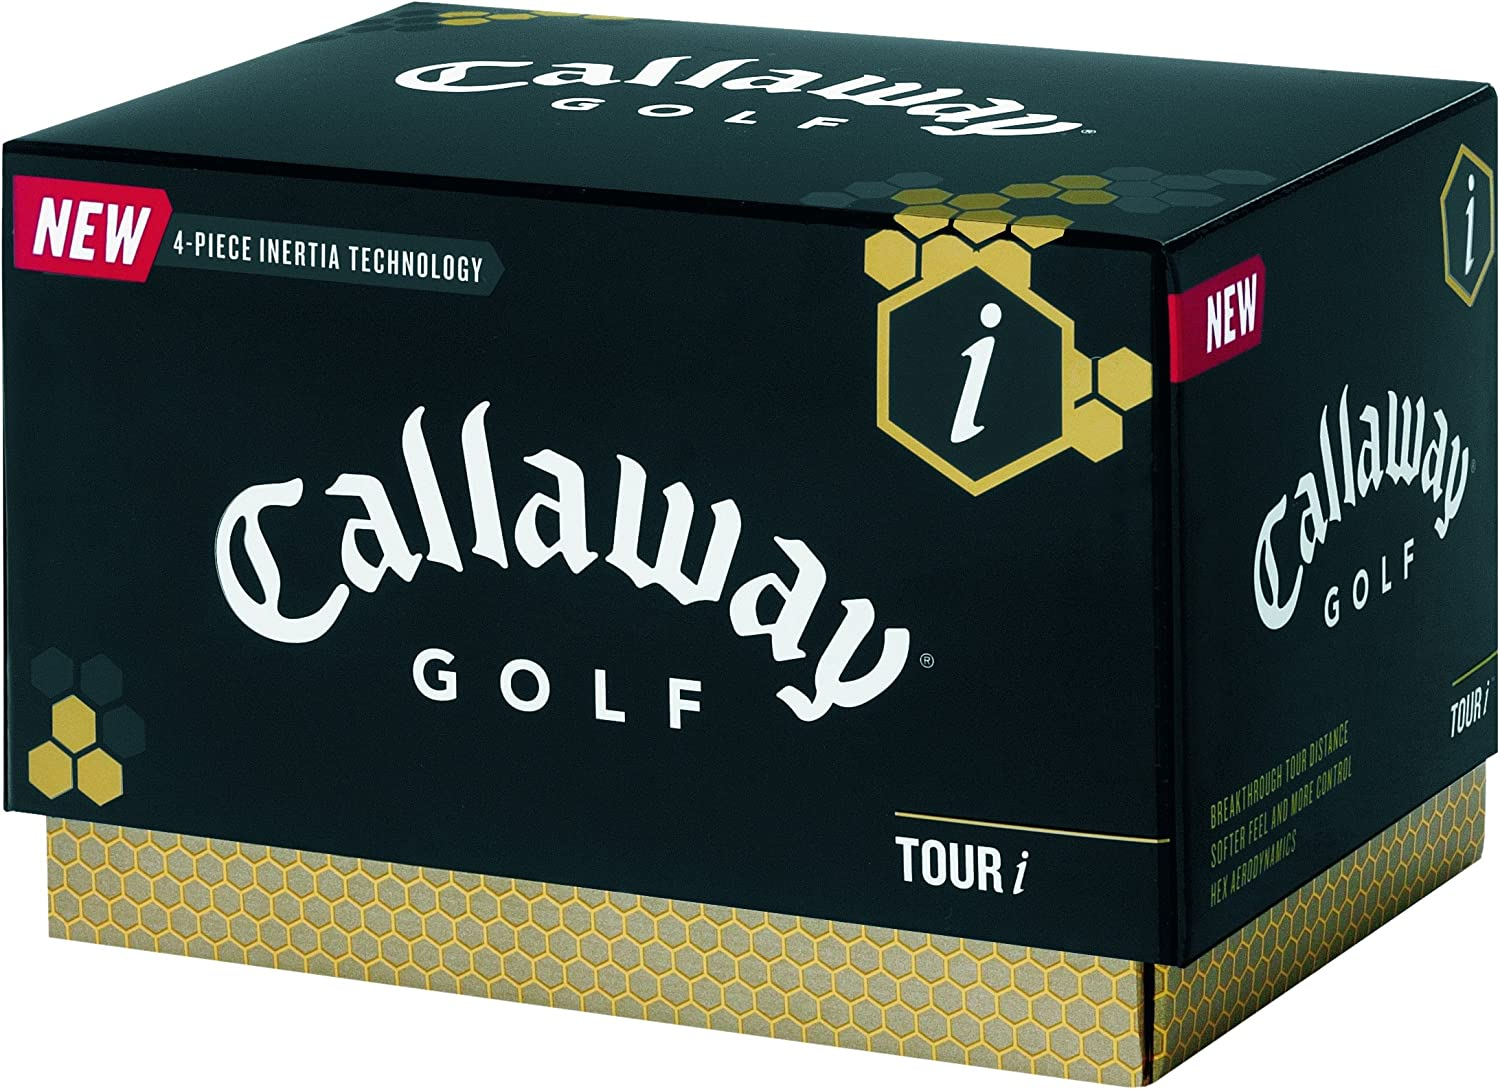 Callaway Tour i Golf Balls (12-Pack)